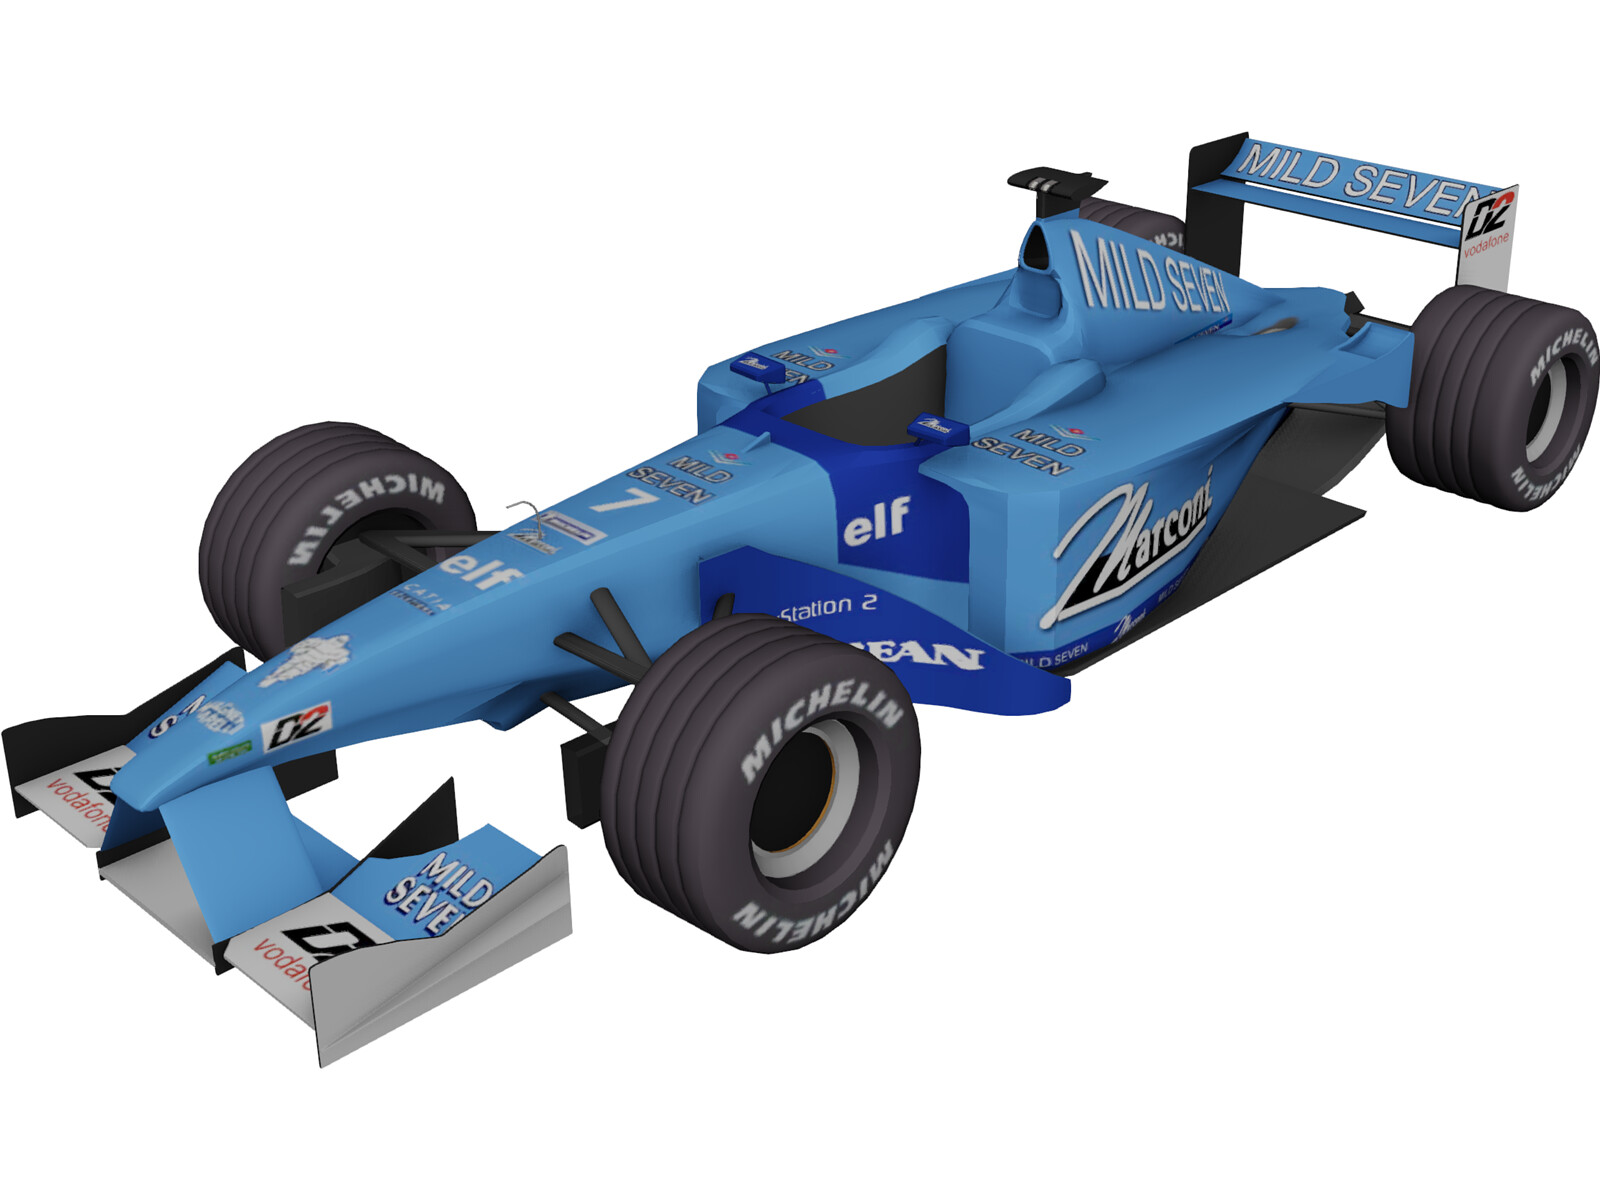 F1 Benetton 2001 3D Model Download  3D CAD Browser